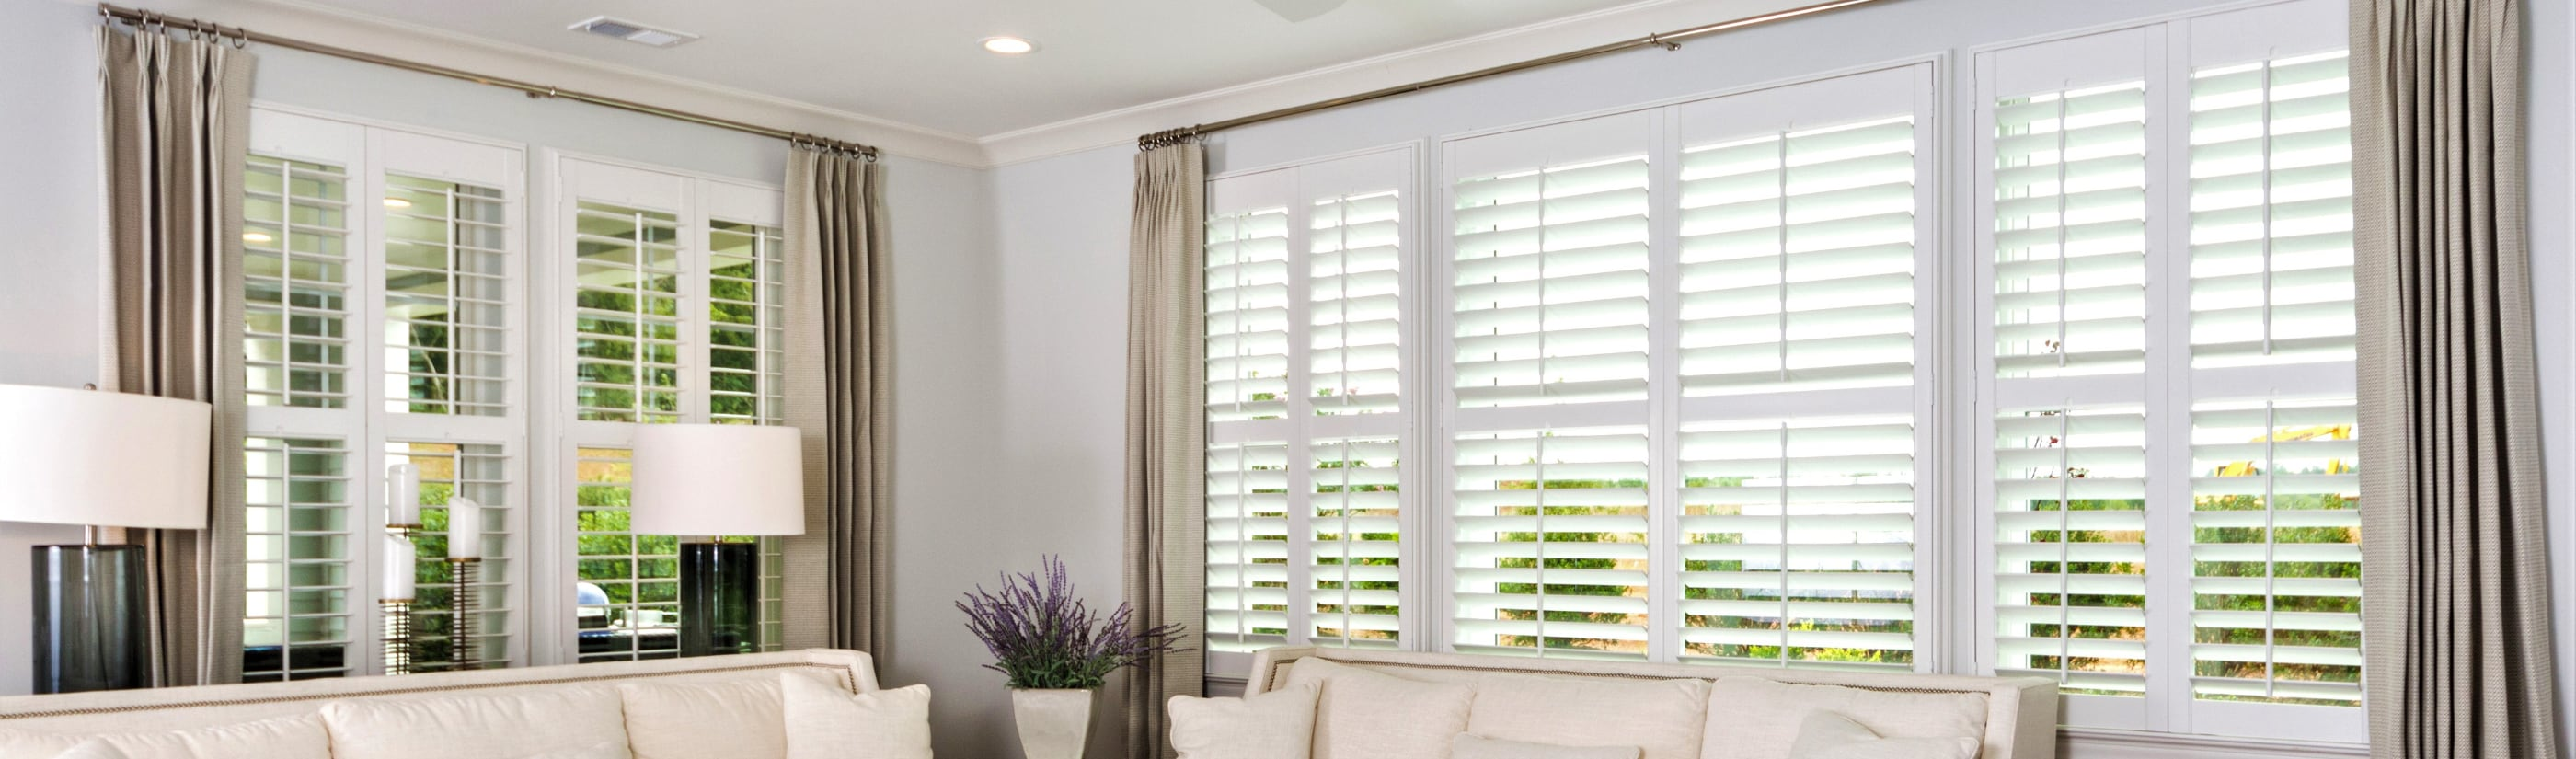 Polywood Shutters Paints In Fort Lauderdale